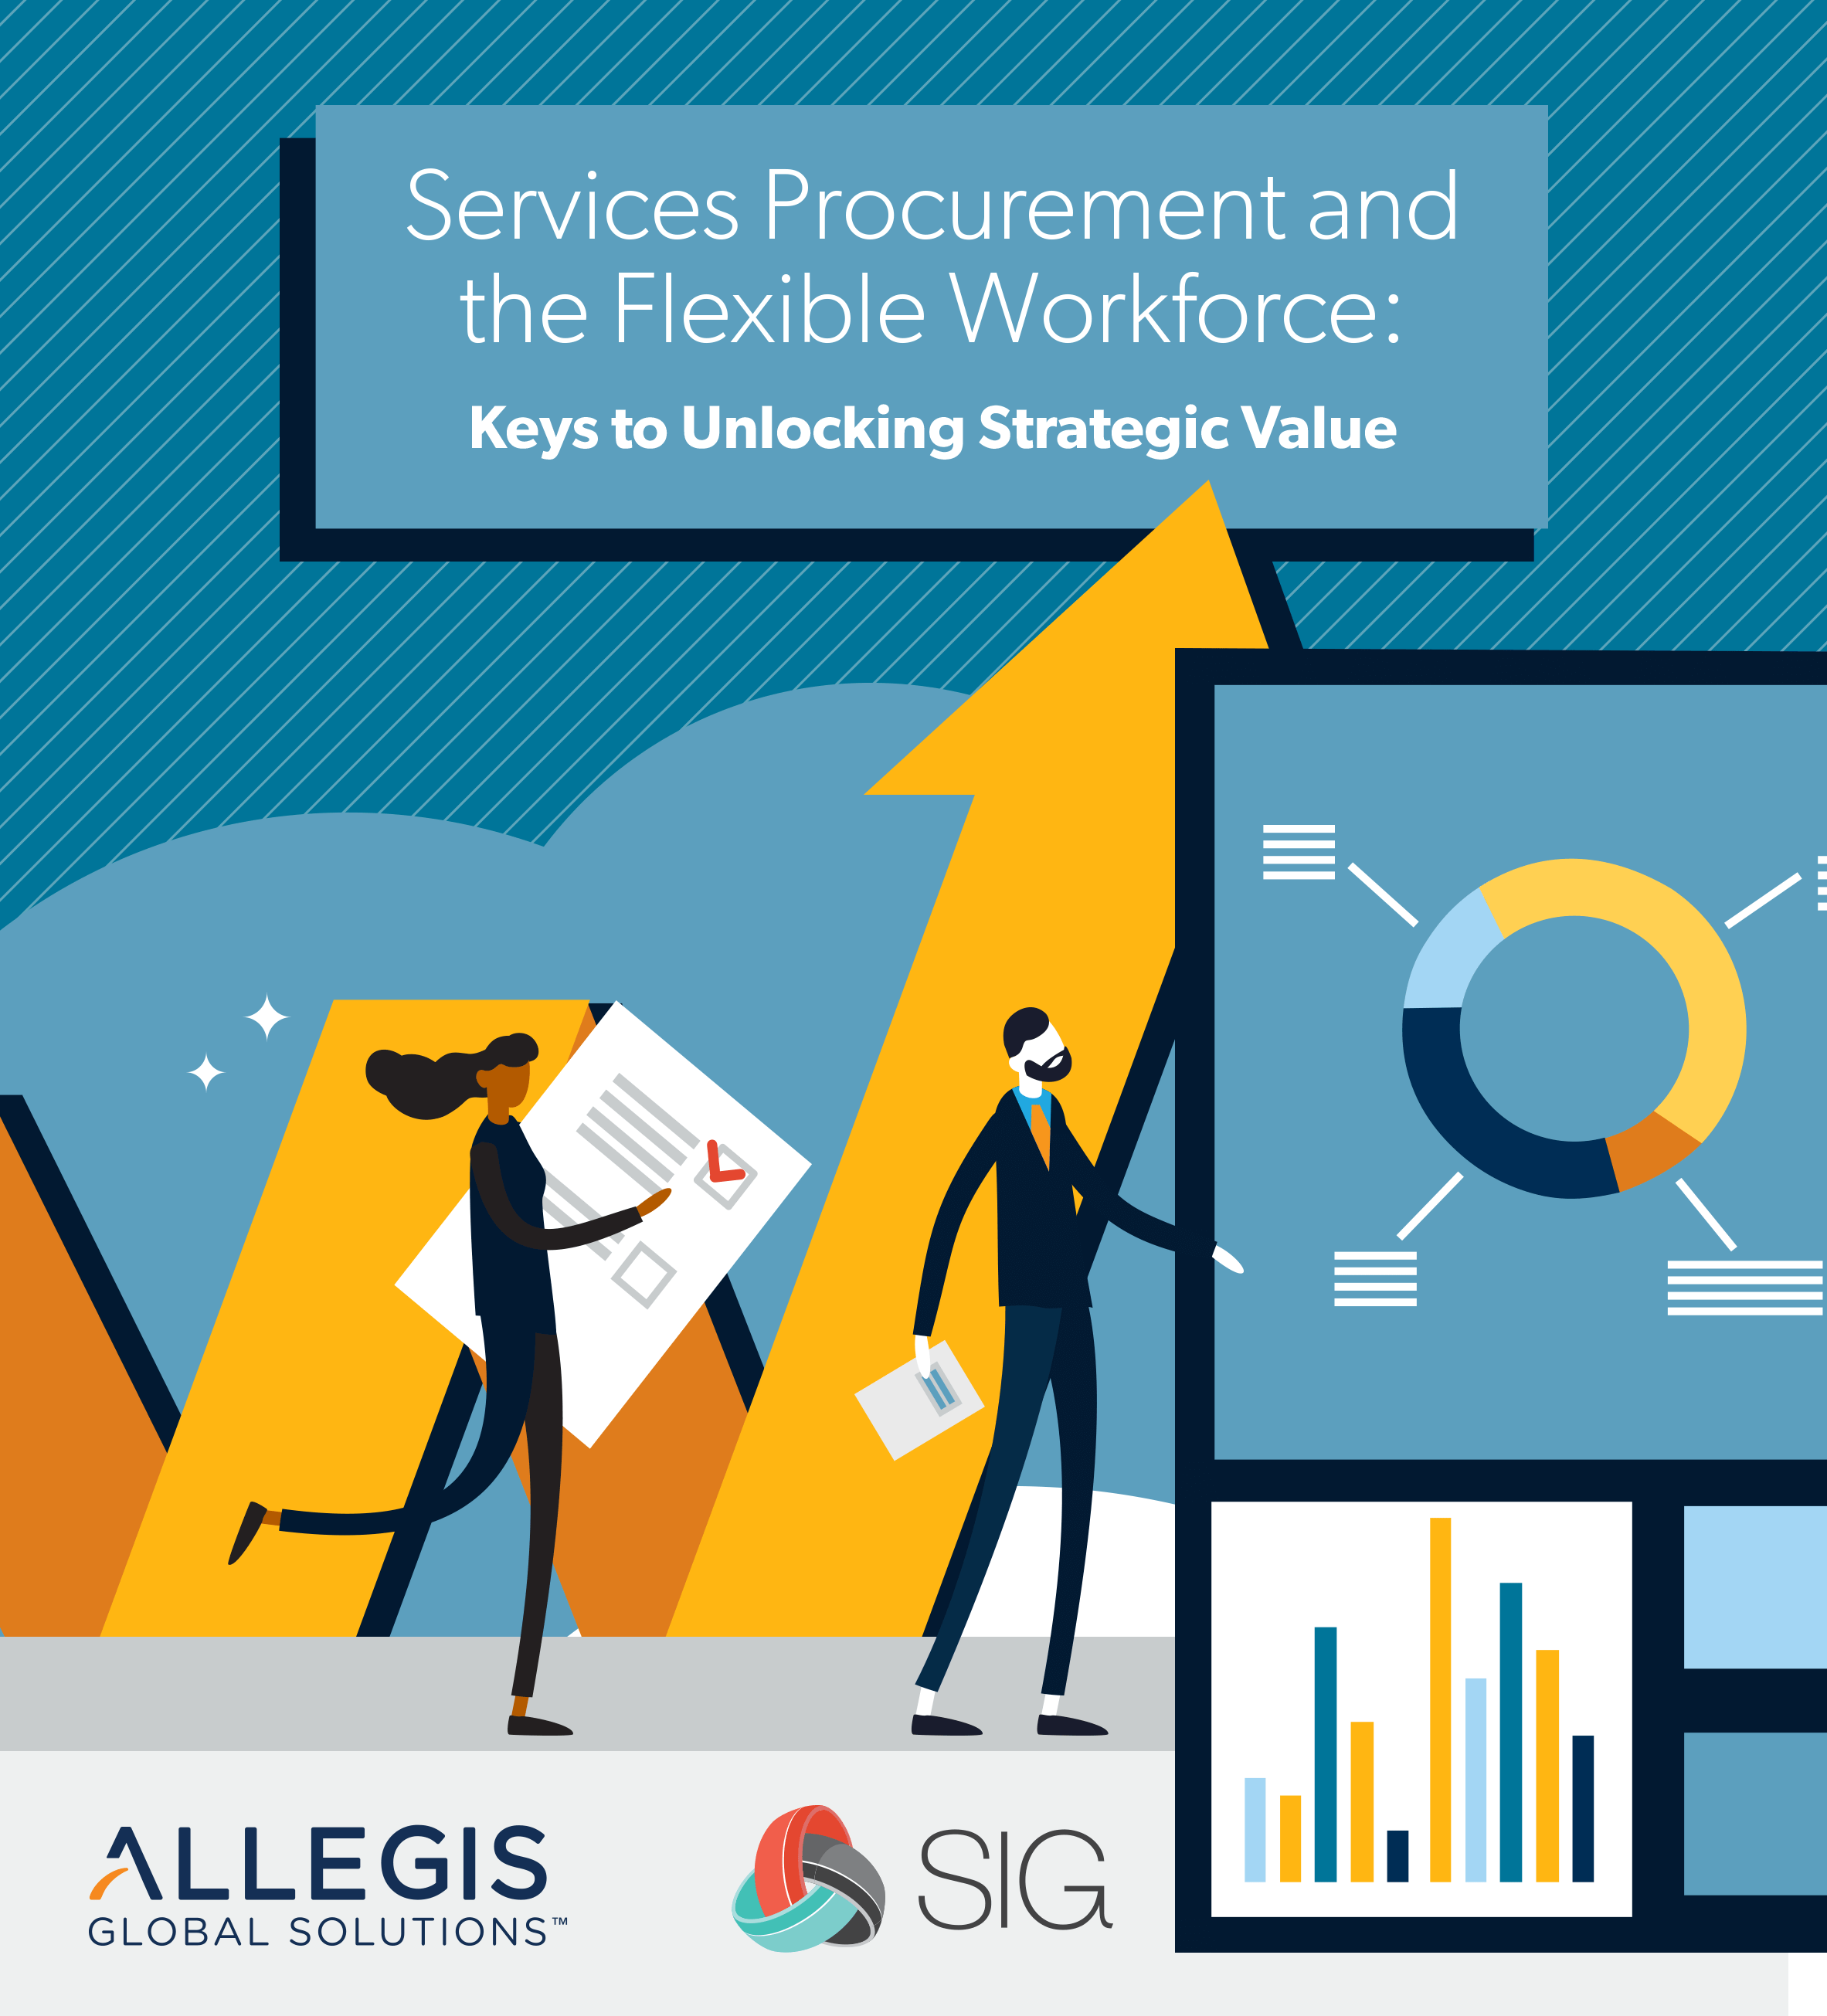 Infographic for Services Procurement